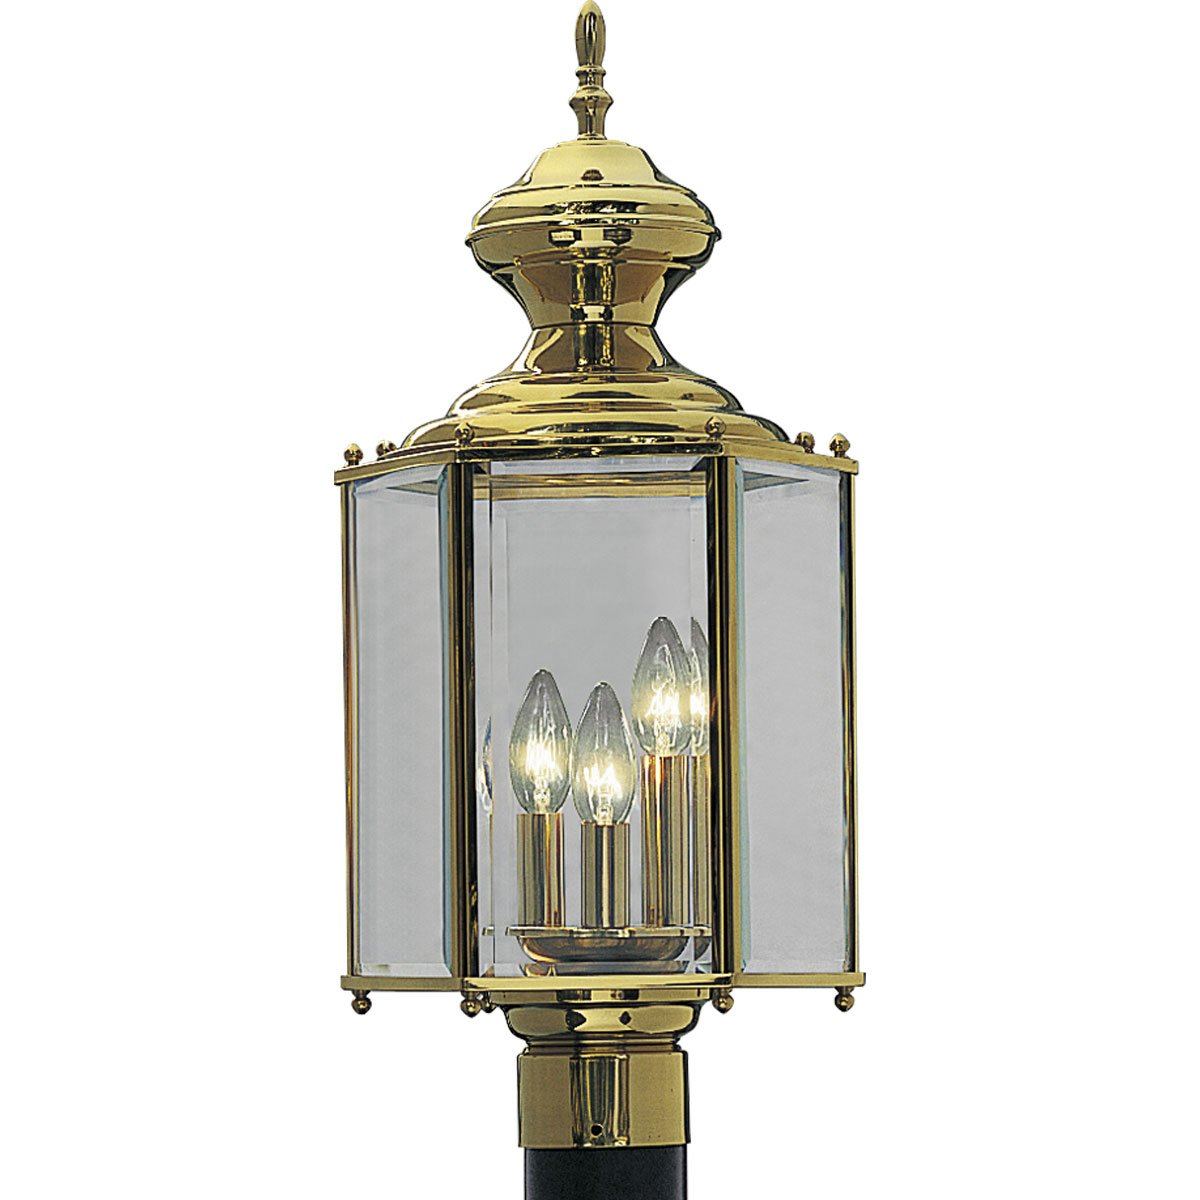 Progress Lighting P5432-10 Hexagonal Post Lantern with Clear Beveled Glass, Polished Brass by Progress Lighting (Image #1)